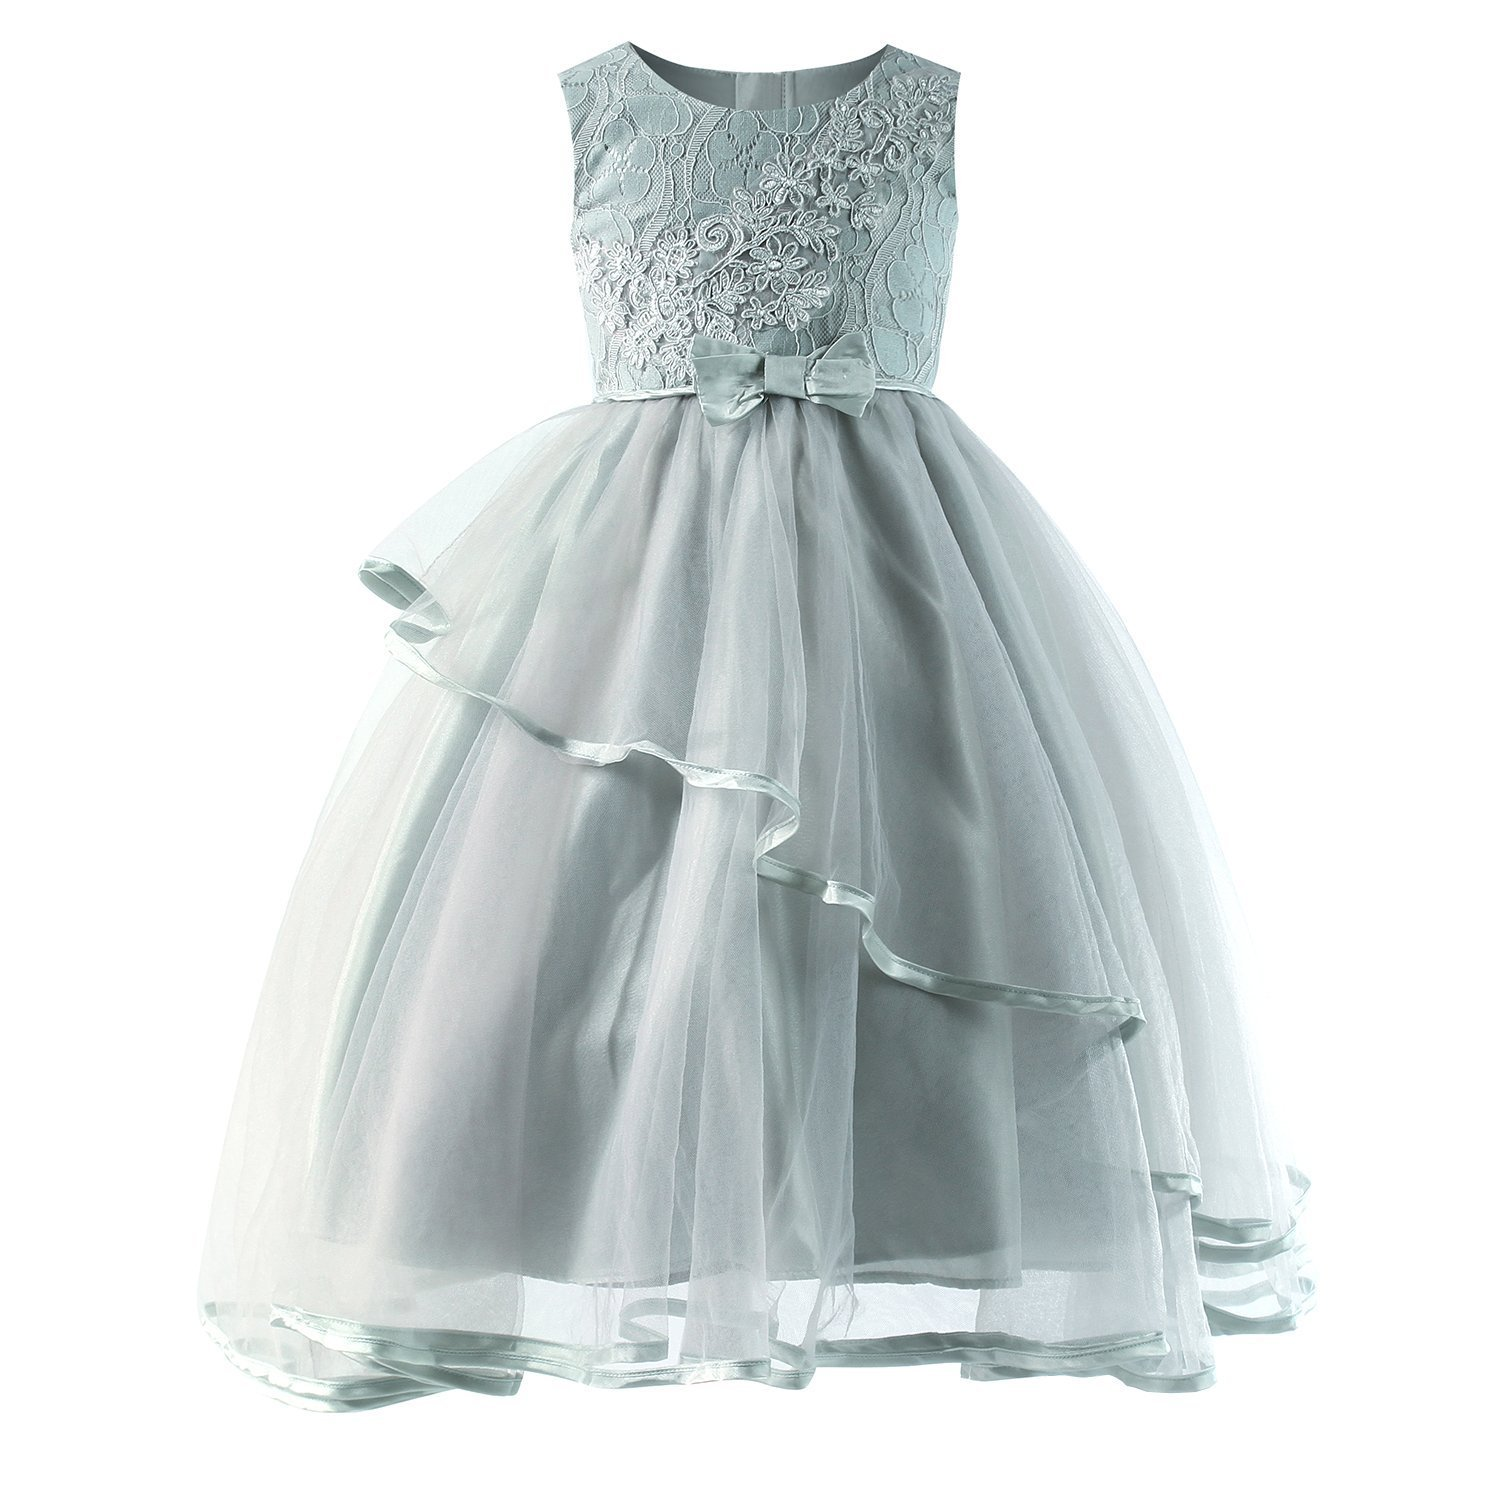 Sharequeen Girl's Princess Party Formal Dresses Bow-Knot Wedding Flower Girls Tulle Gown (6 Years, Graygreen-028)